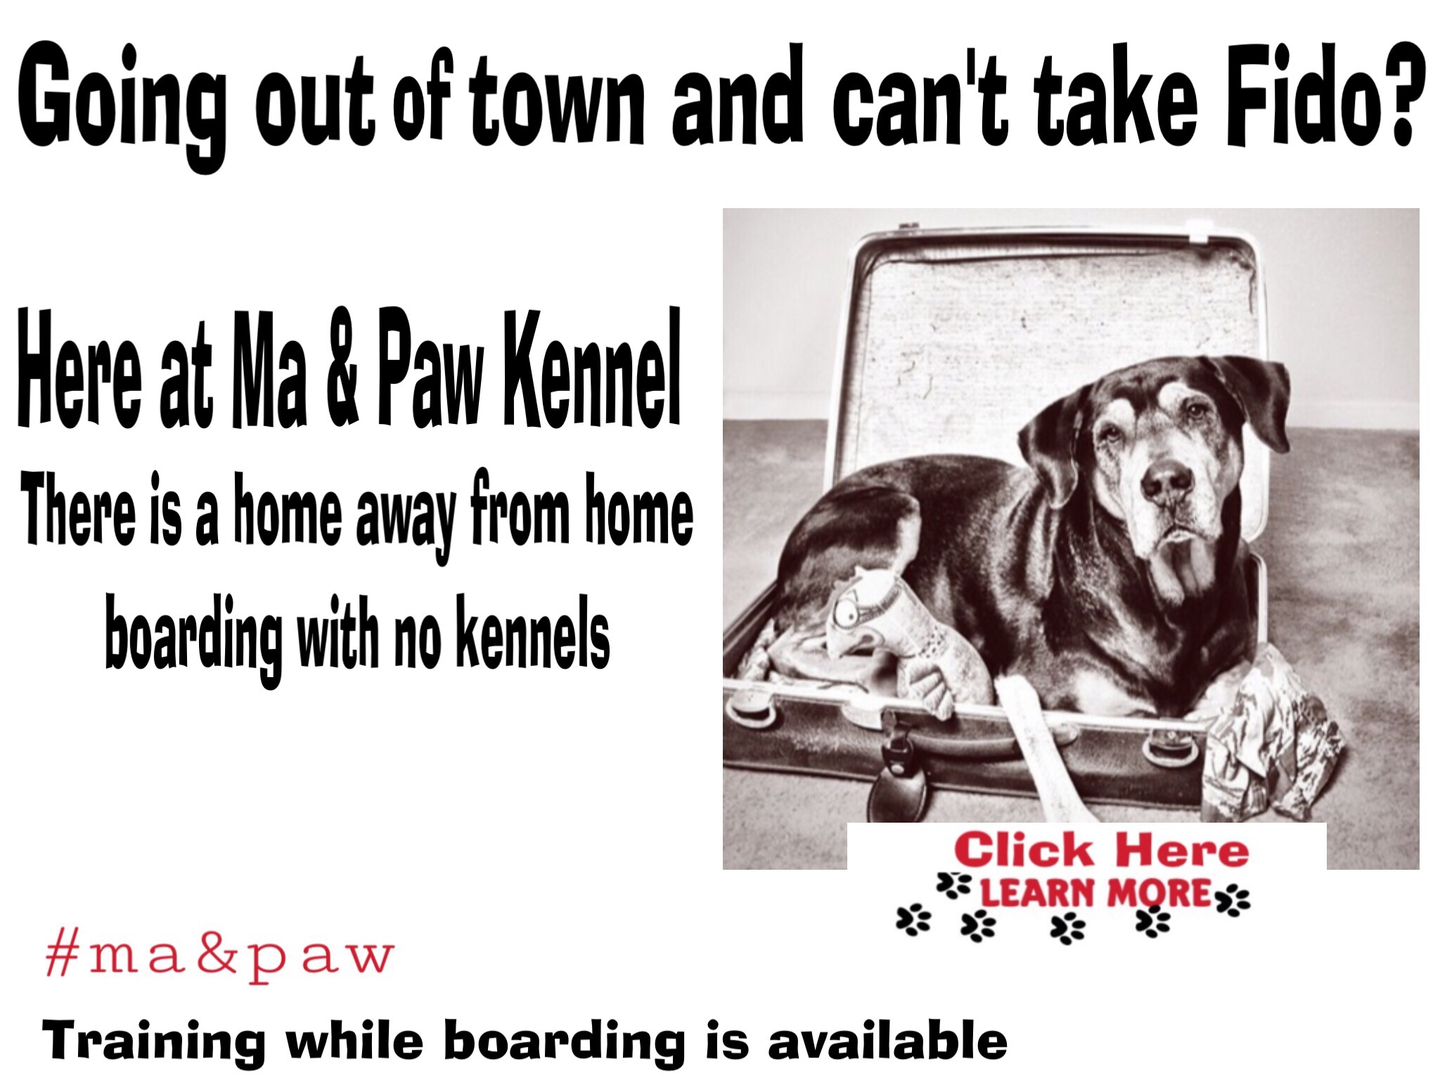 Ma & Paw Kennel - Dog Boarding And Daycare, Dog Training